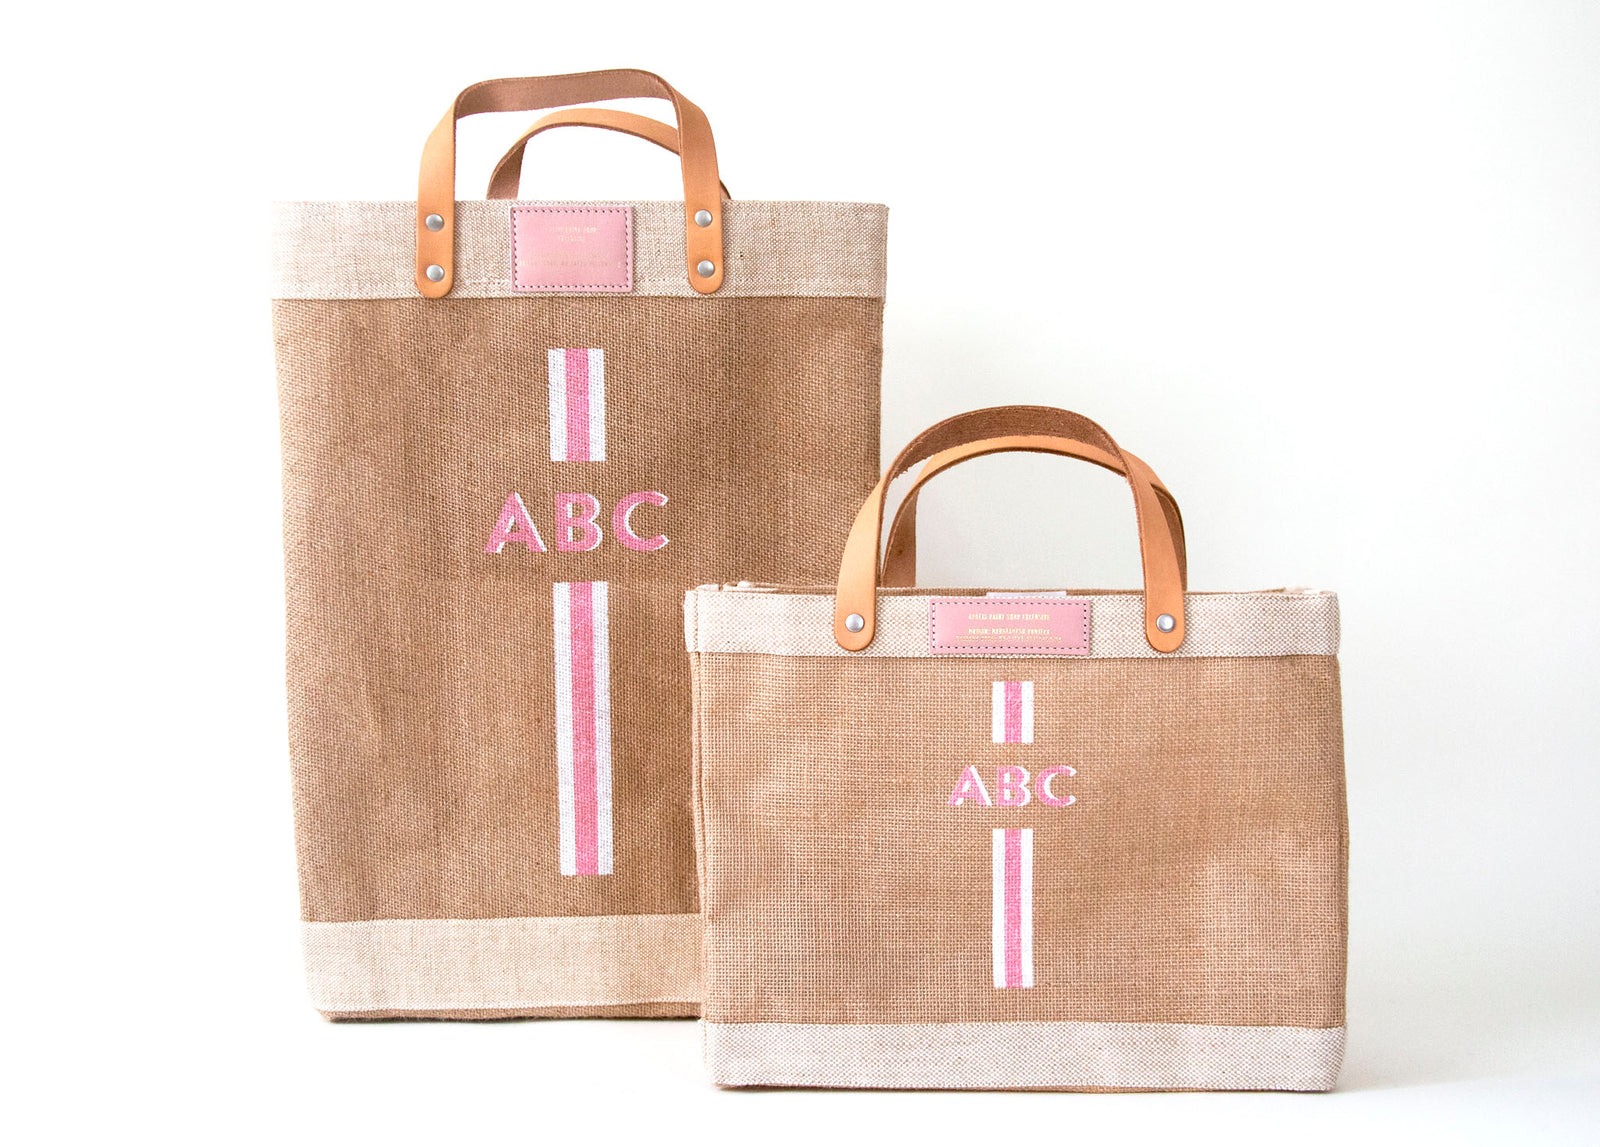 Stripe City Market Bag in Pink | Gold Foil Apolis Print Shop Exclusive